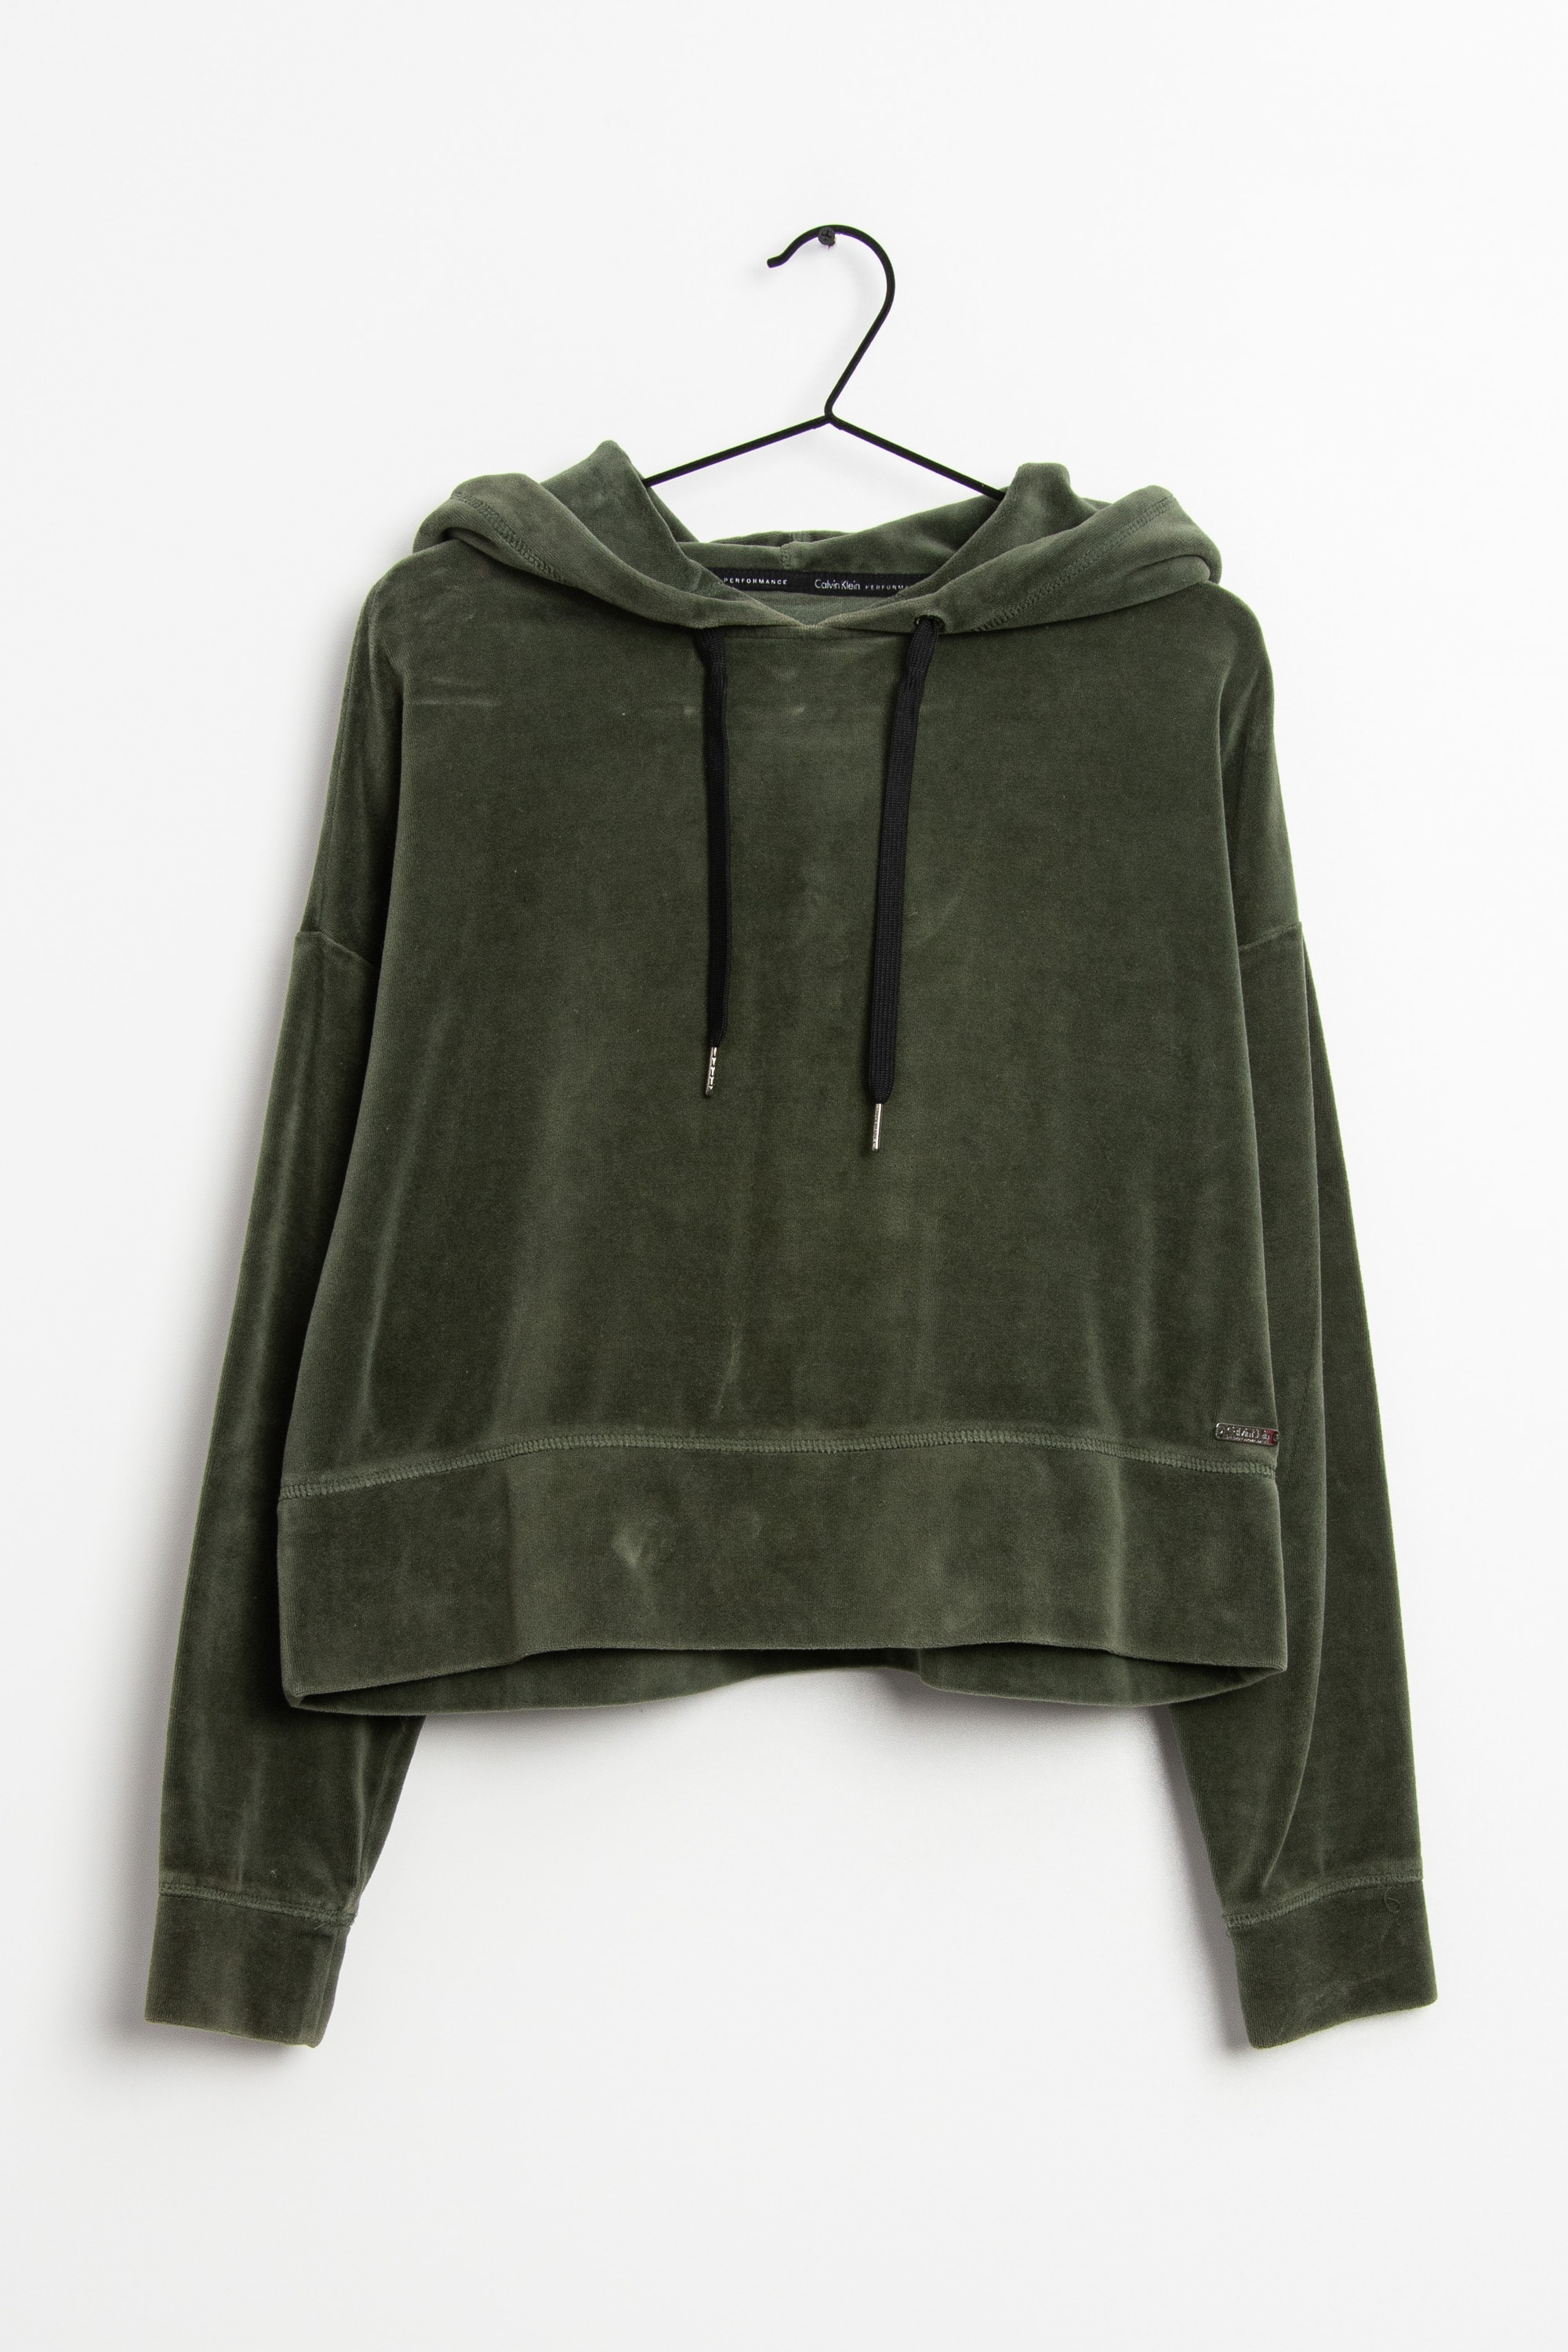 Calvin Klein Sweat / Fleece Grün Gr.M